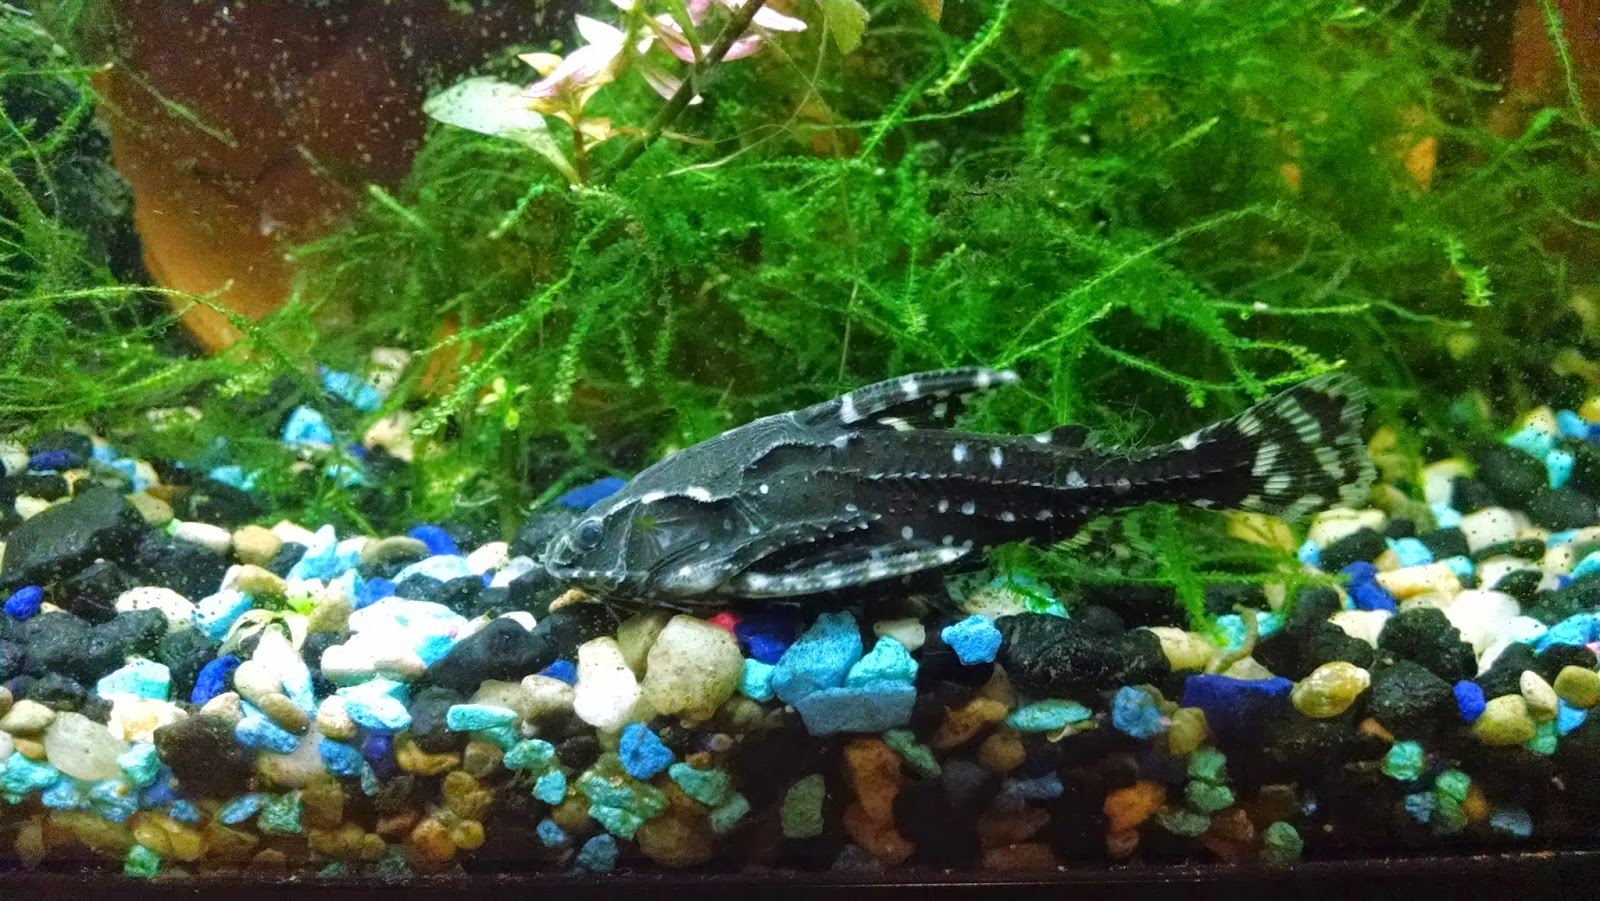 Spotted Raphael Catfish We got a spotted raphael